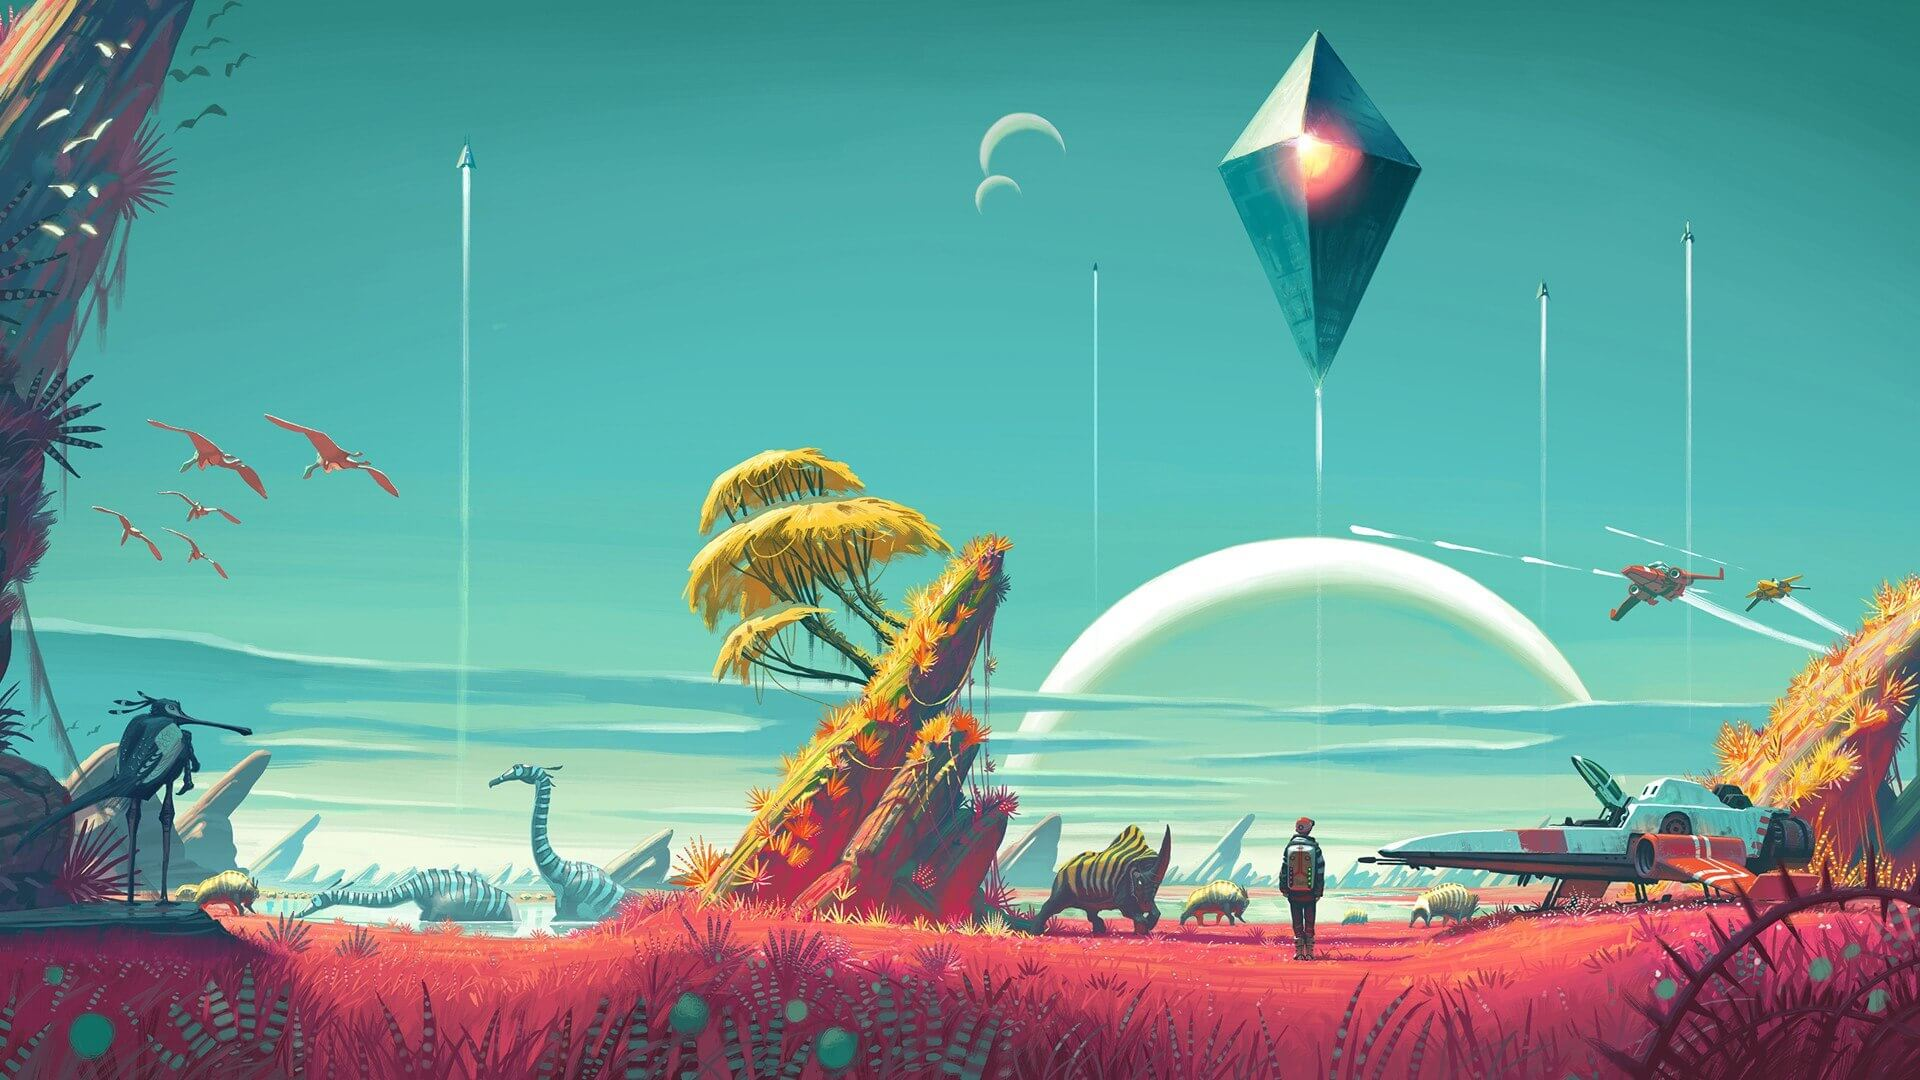 Xbox celebrates your Earth Day: 5 Games to play on Earth Day 2021 to get involved